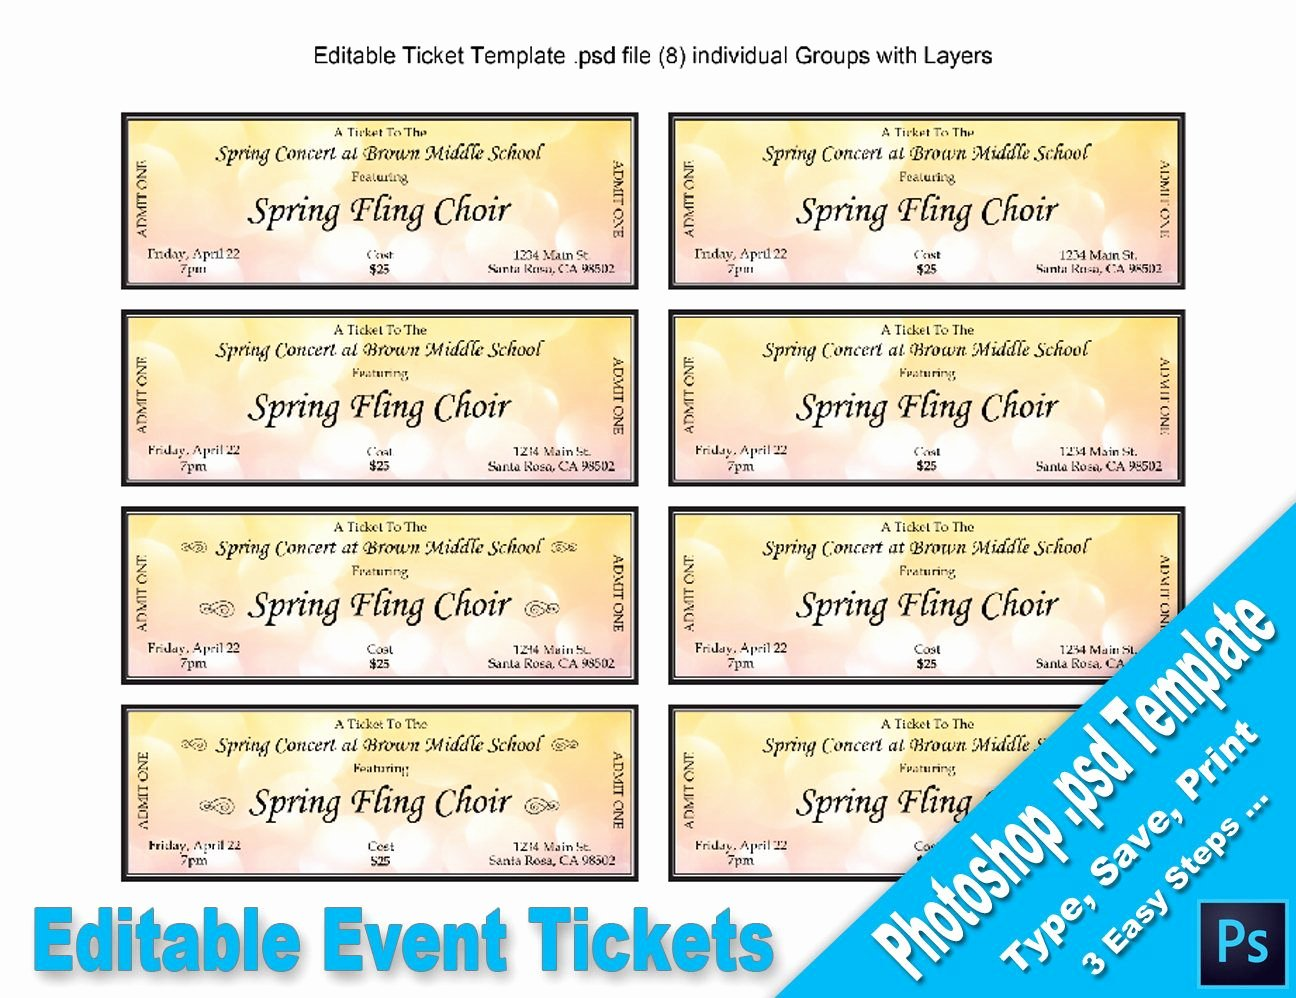 Event Ticket Template Photoshop Inspirational event Tickets Editable Shop Psd Template Printable